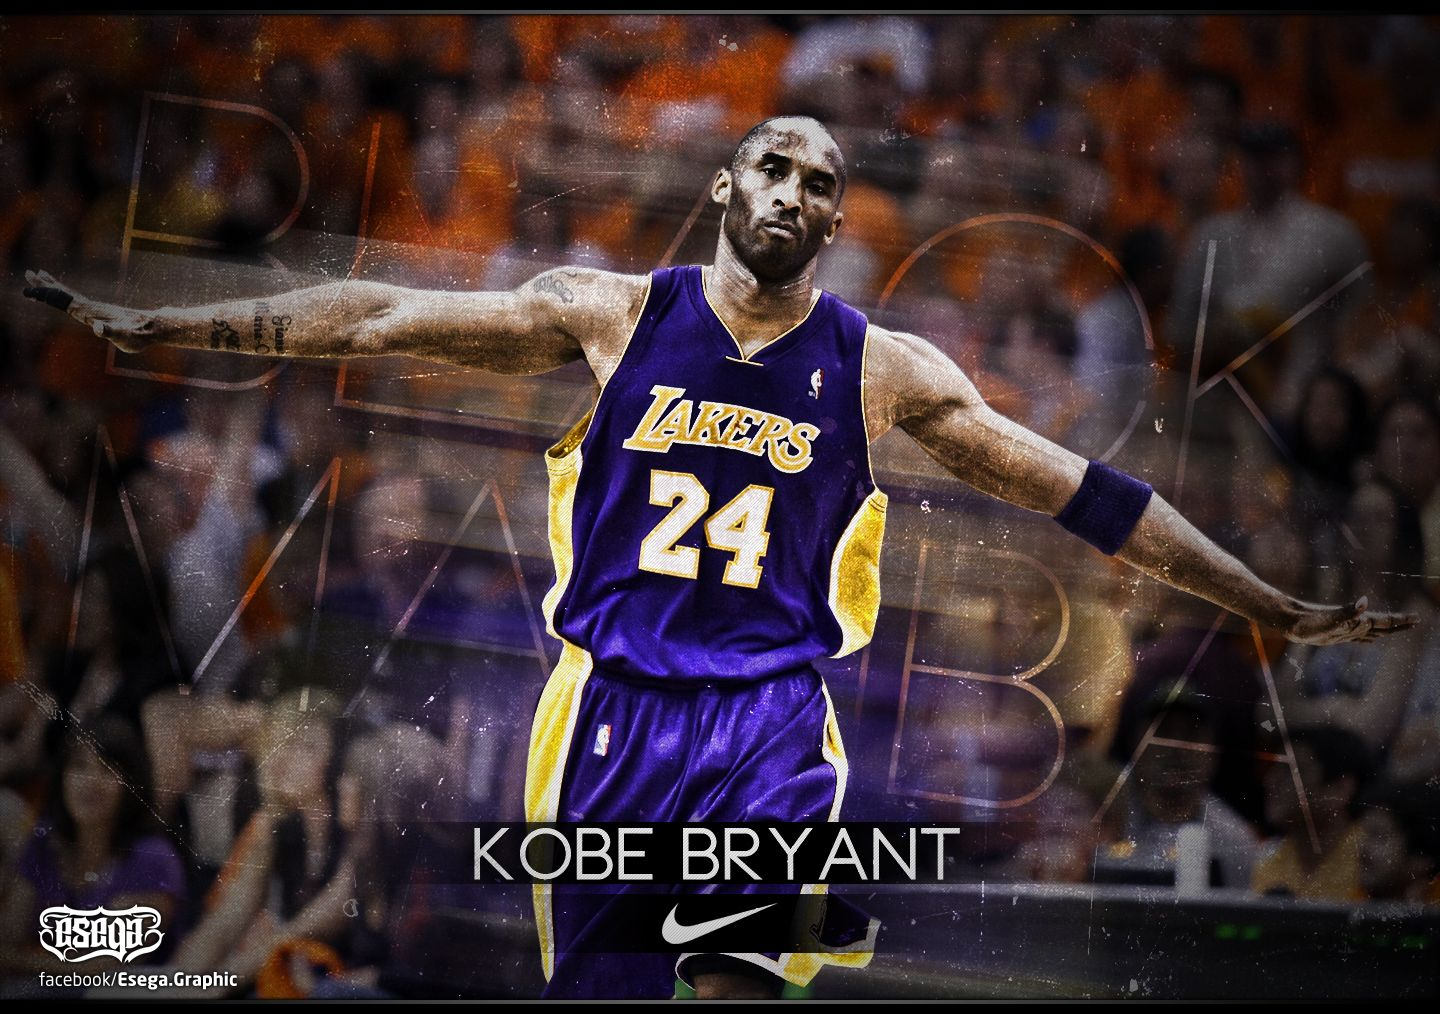 Download Kobe Bryant Wallpaper DO19 Mlebu